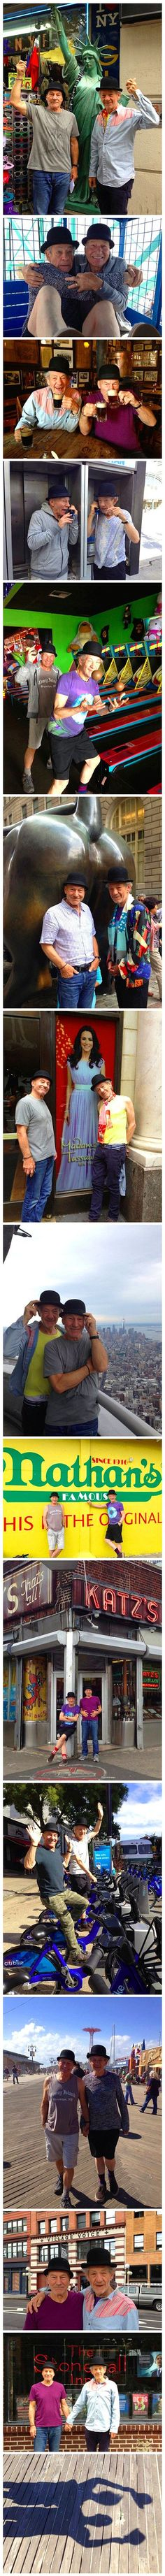 In honor of their final performances on Broadway in No Man's Land and Waiting for Godot, co-stars and best friends Sir Ian McKellen and Sir Patrick Stewart recently decided to say goodbye to New York City by releasing some funny outtakes from their adventu